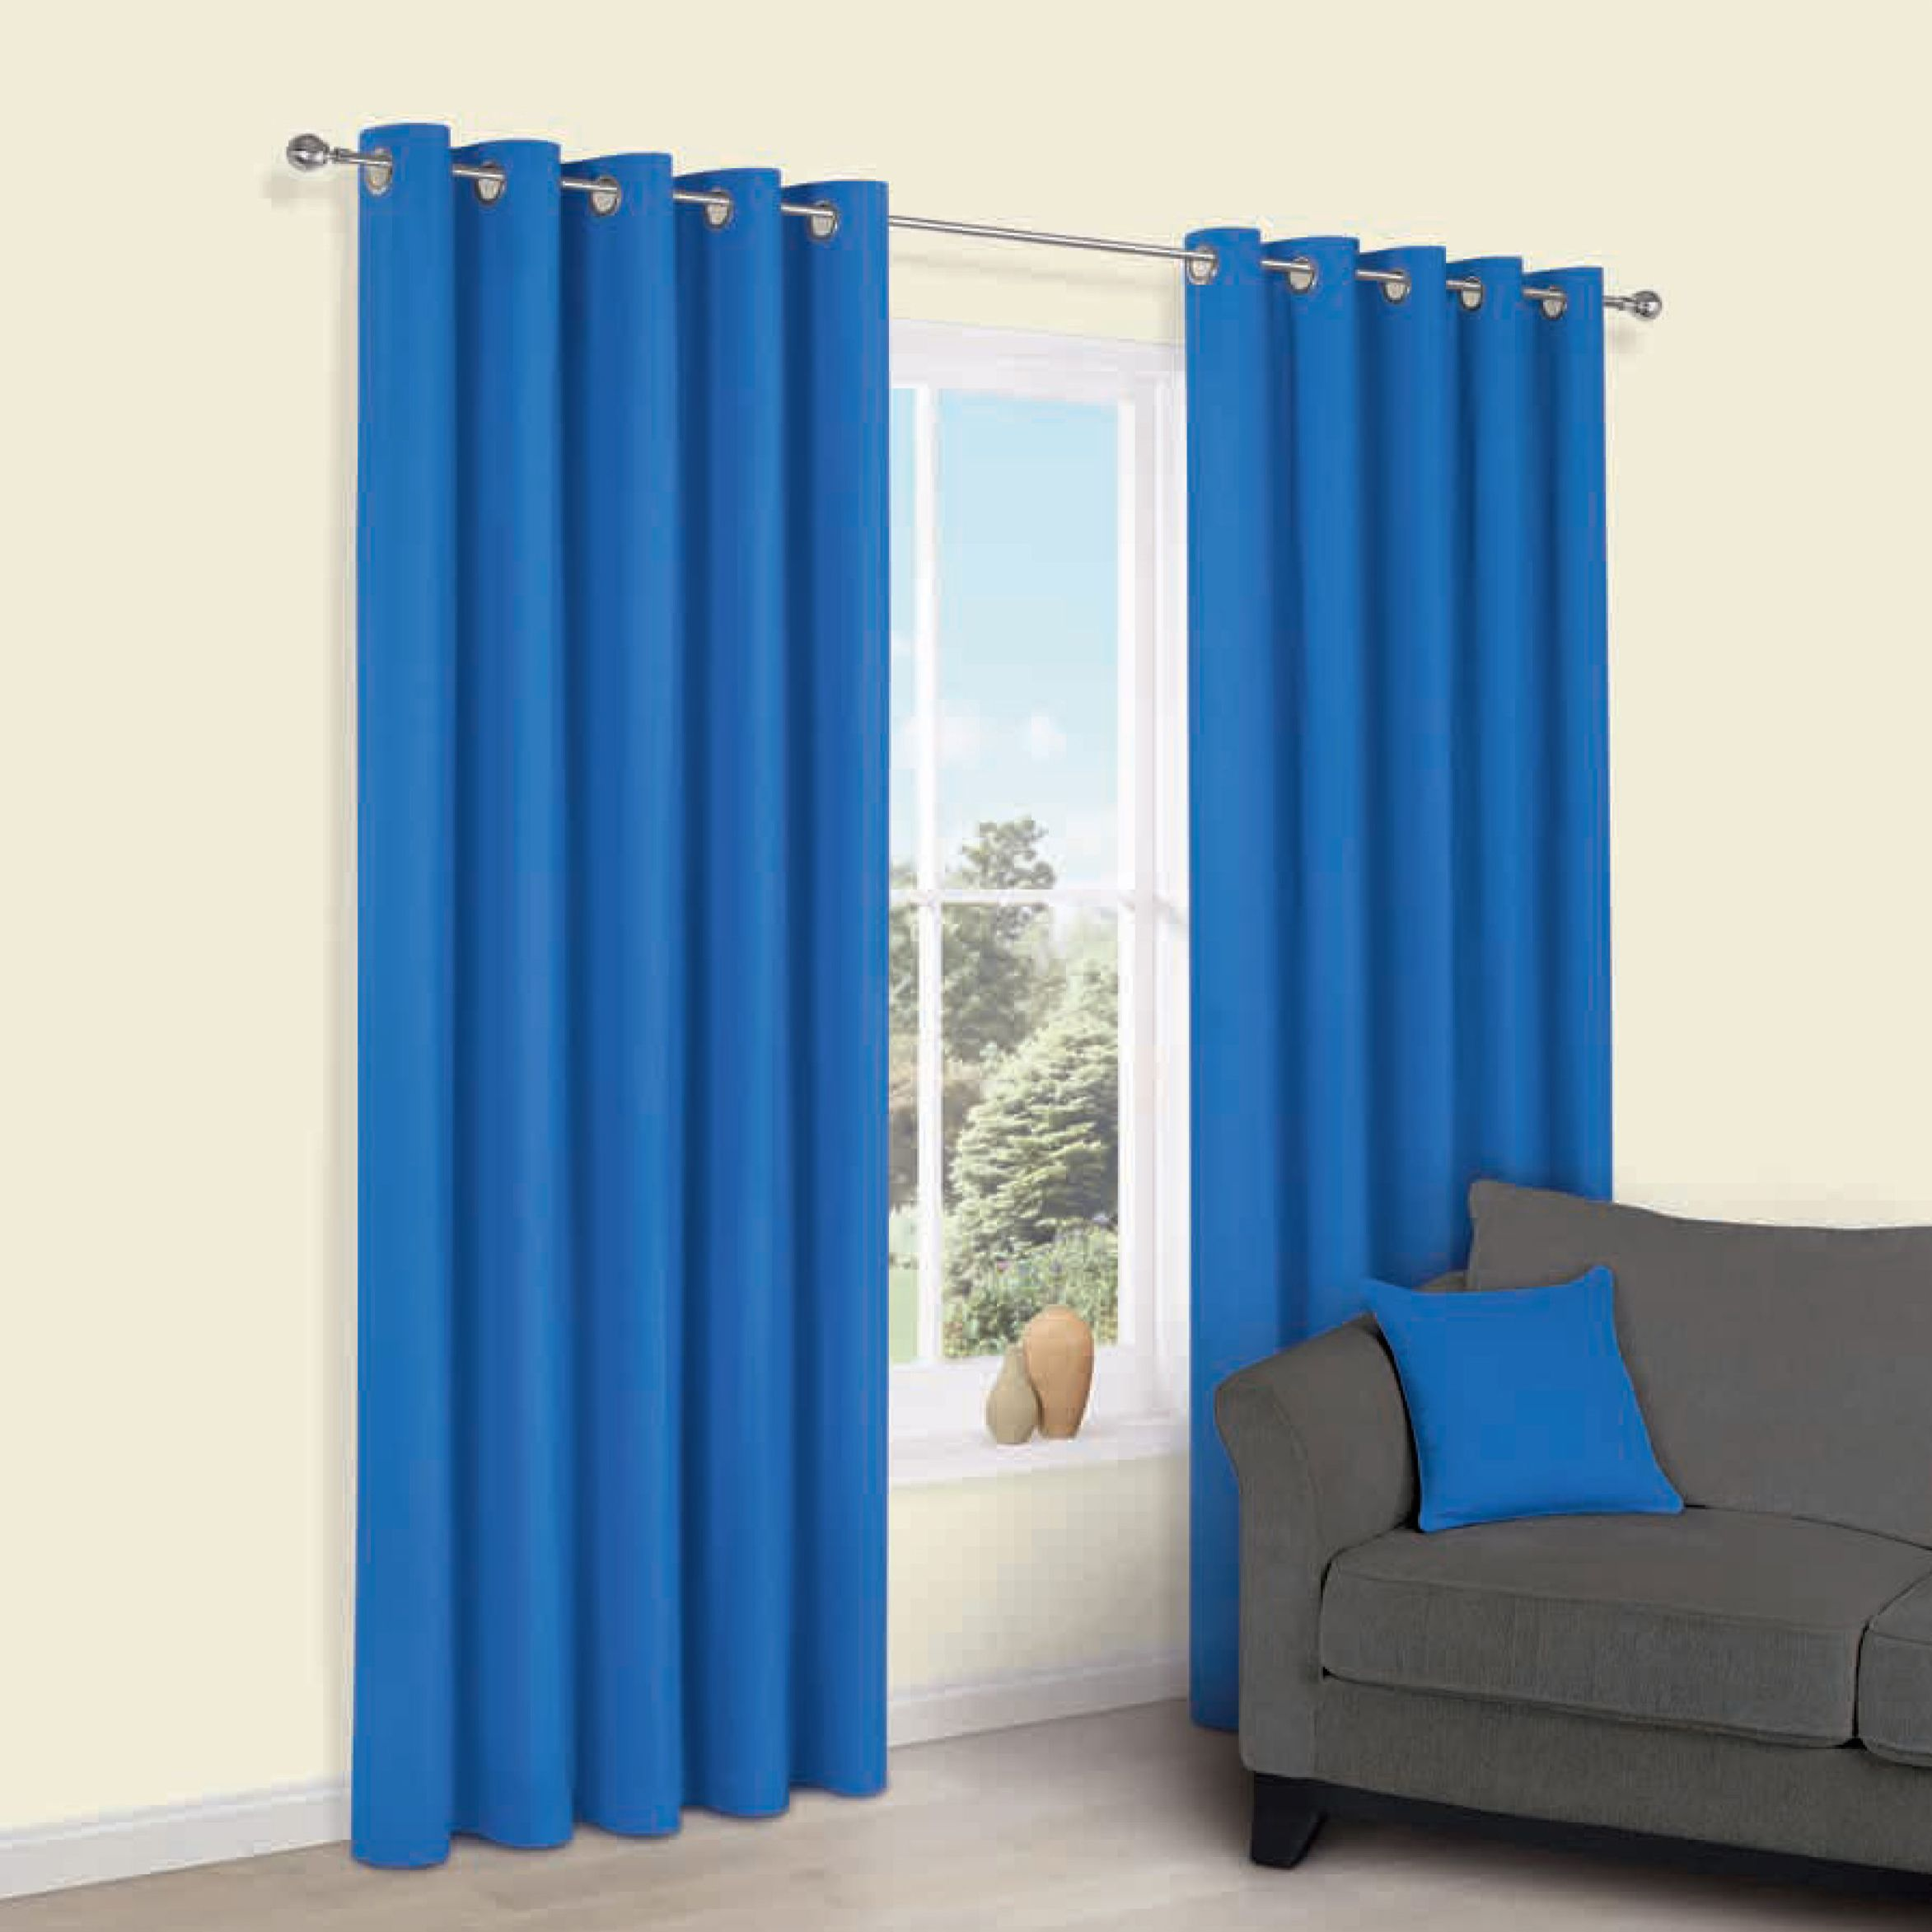 Zen Blue Plain Eyelet Curtains (w)167cm (l)183cm